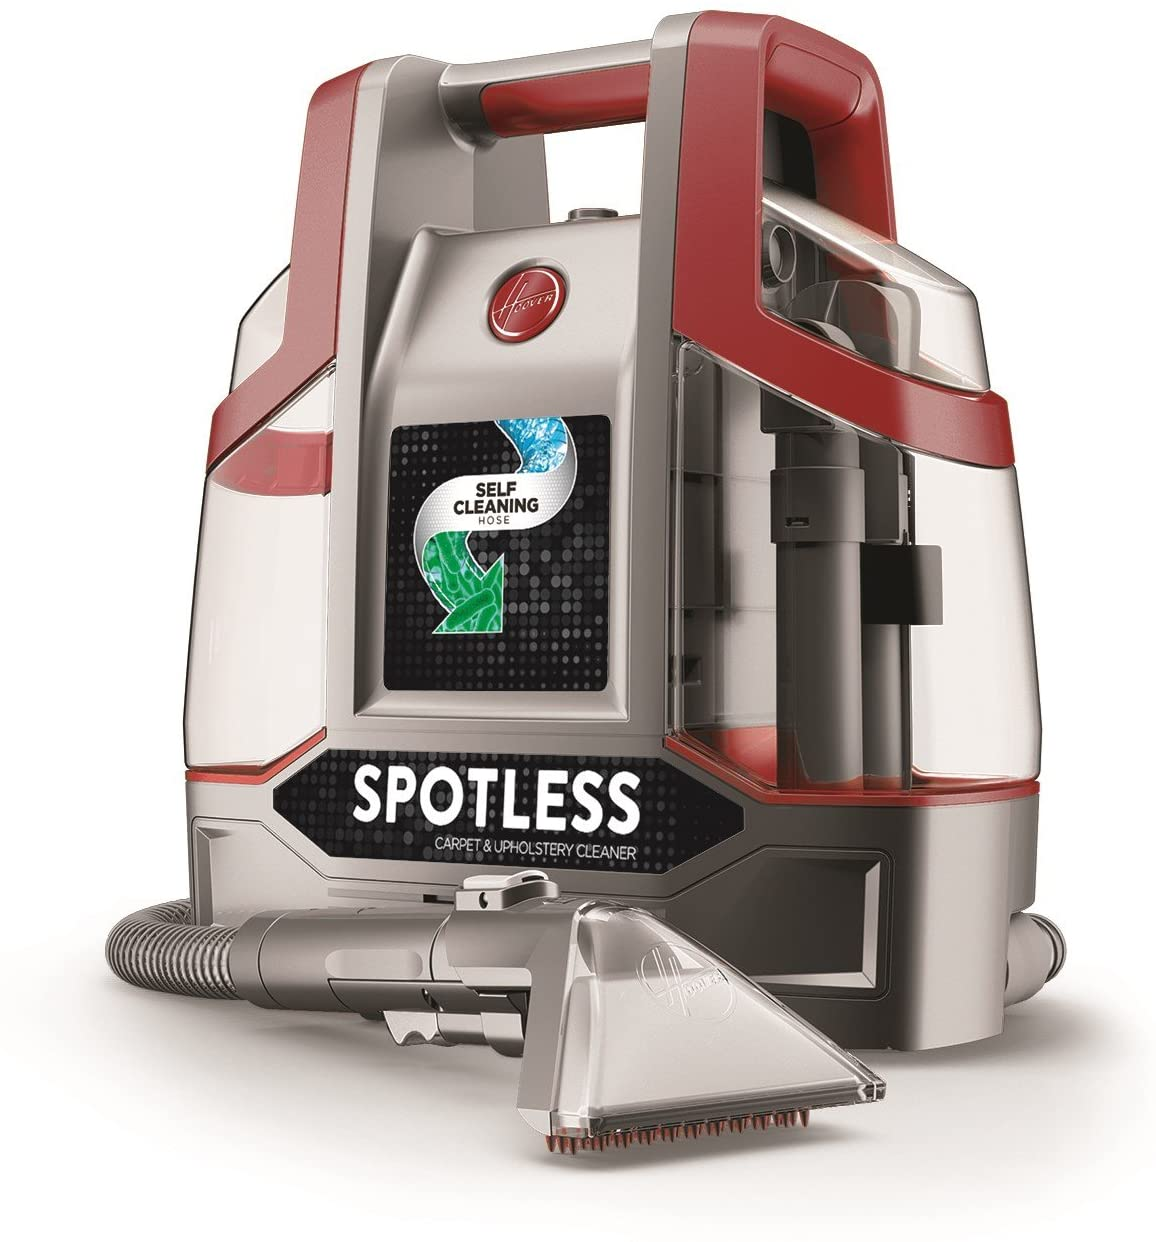 Spotless Portable Carpet & Upholstery Spot Cleaner